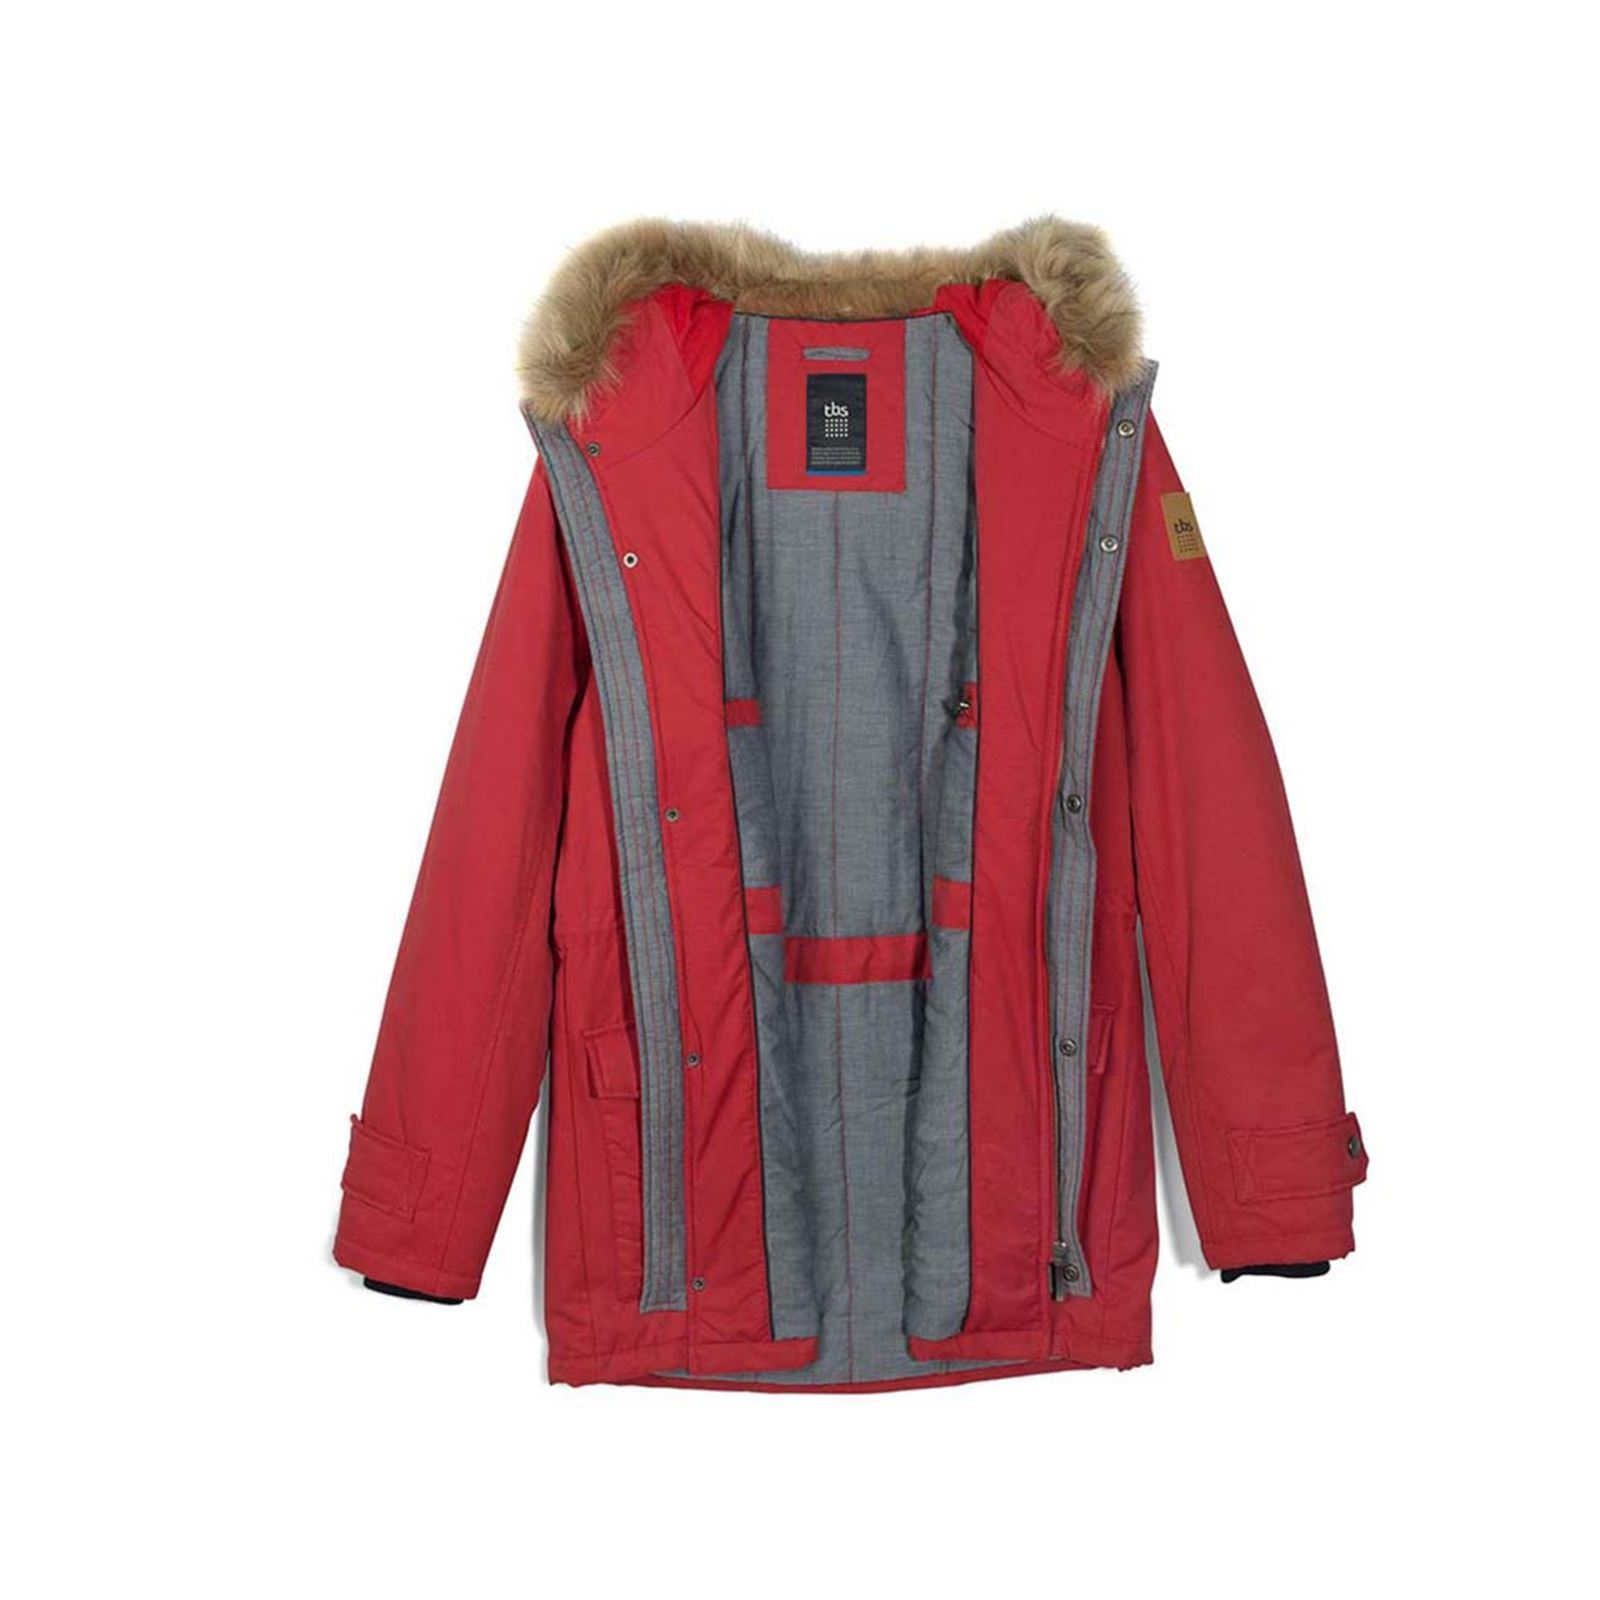 Rouge Homme Tbs Homme Homme Rouge Tbs VoblonBlouson VoblonBlouson VoblonBlouson V Tbs Rouge V Ybf76gy